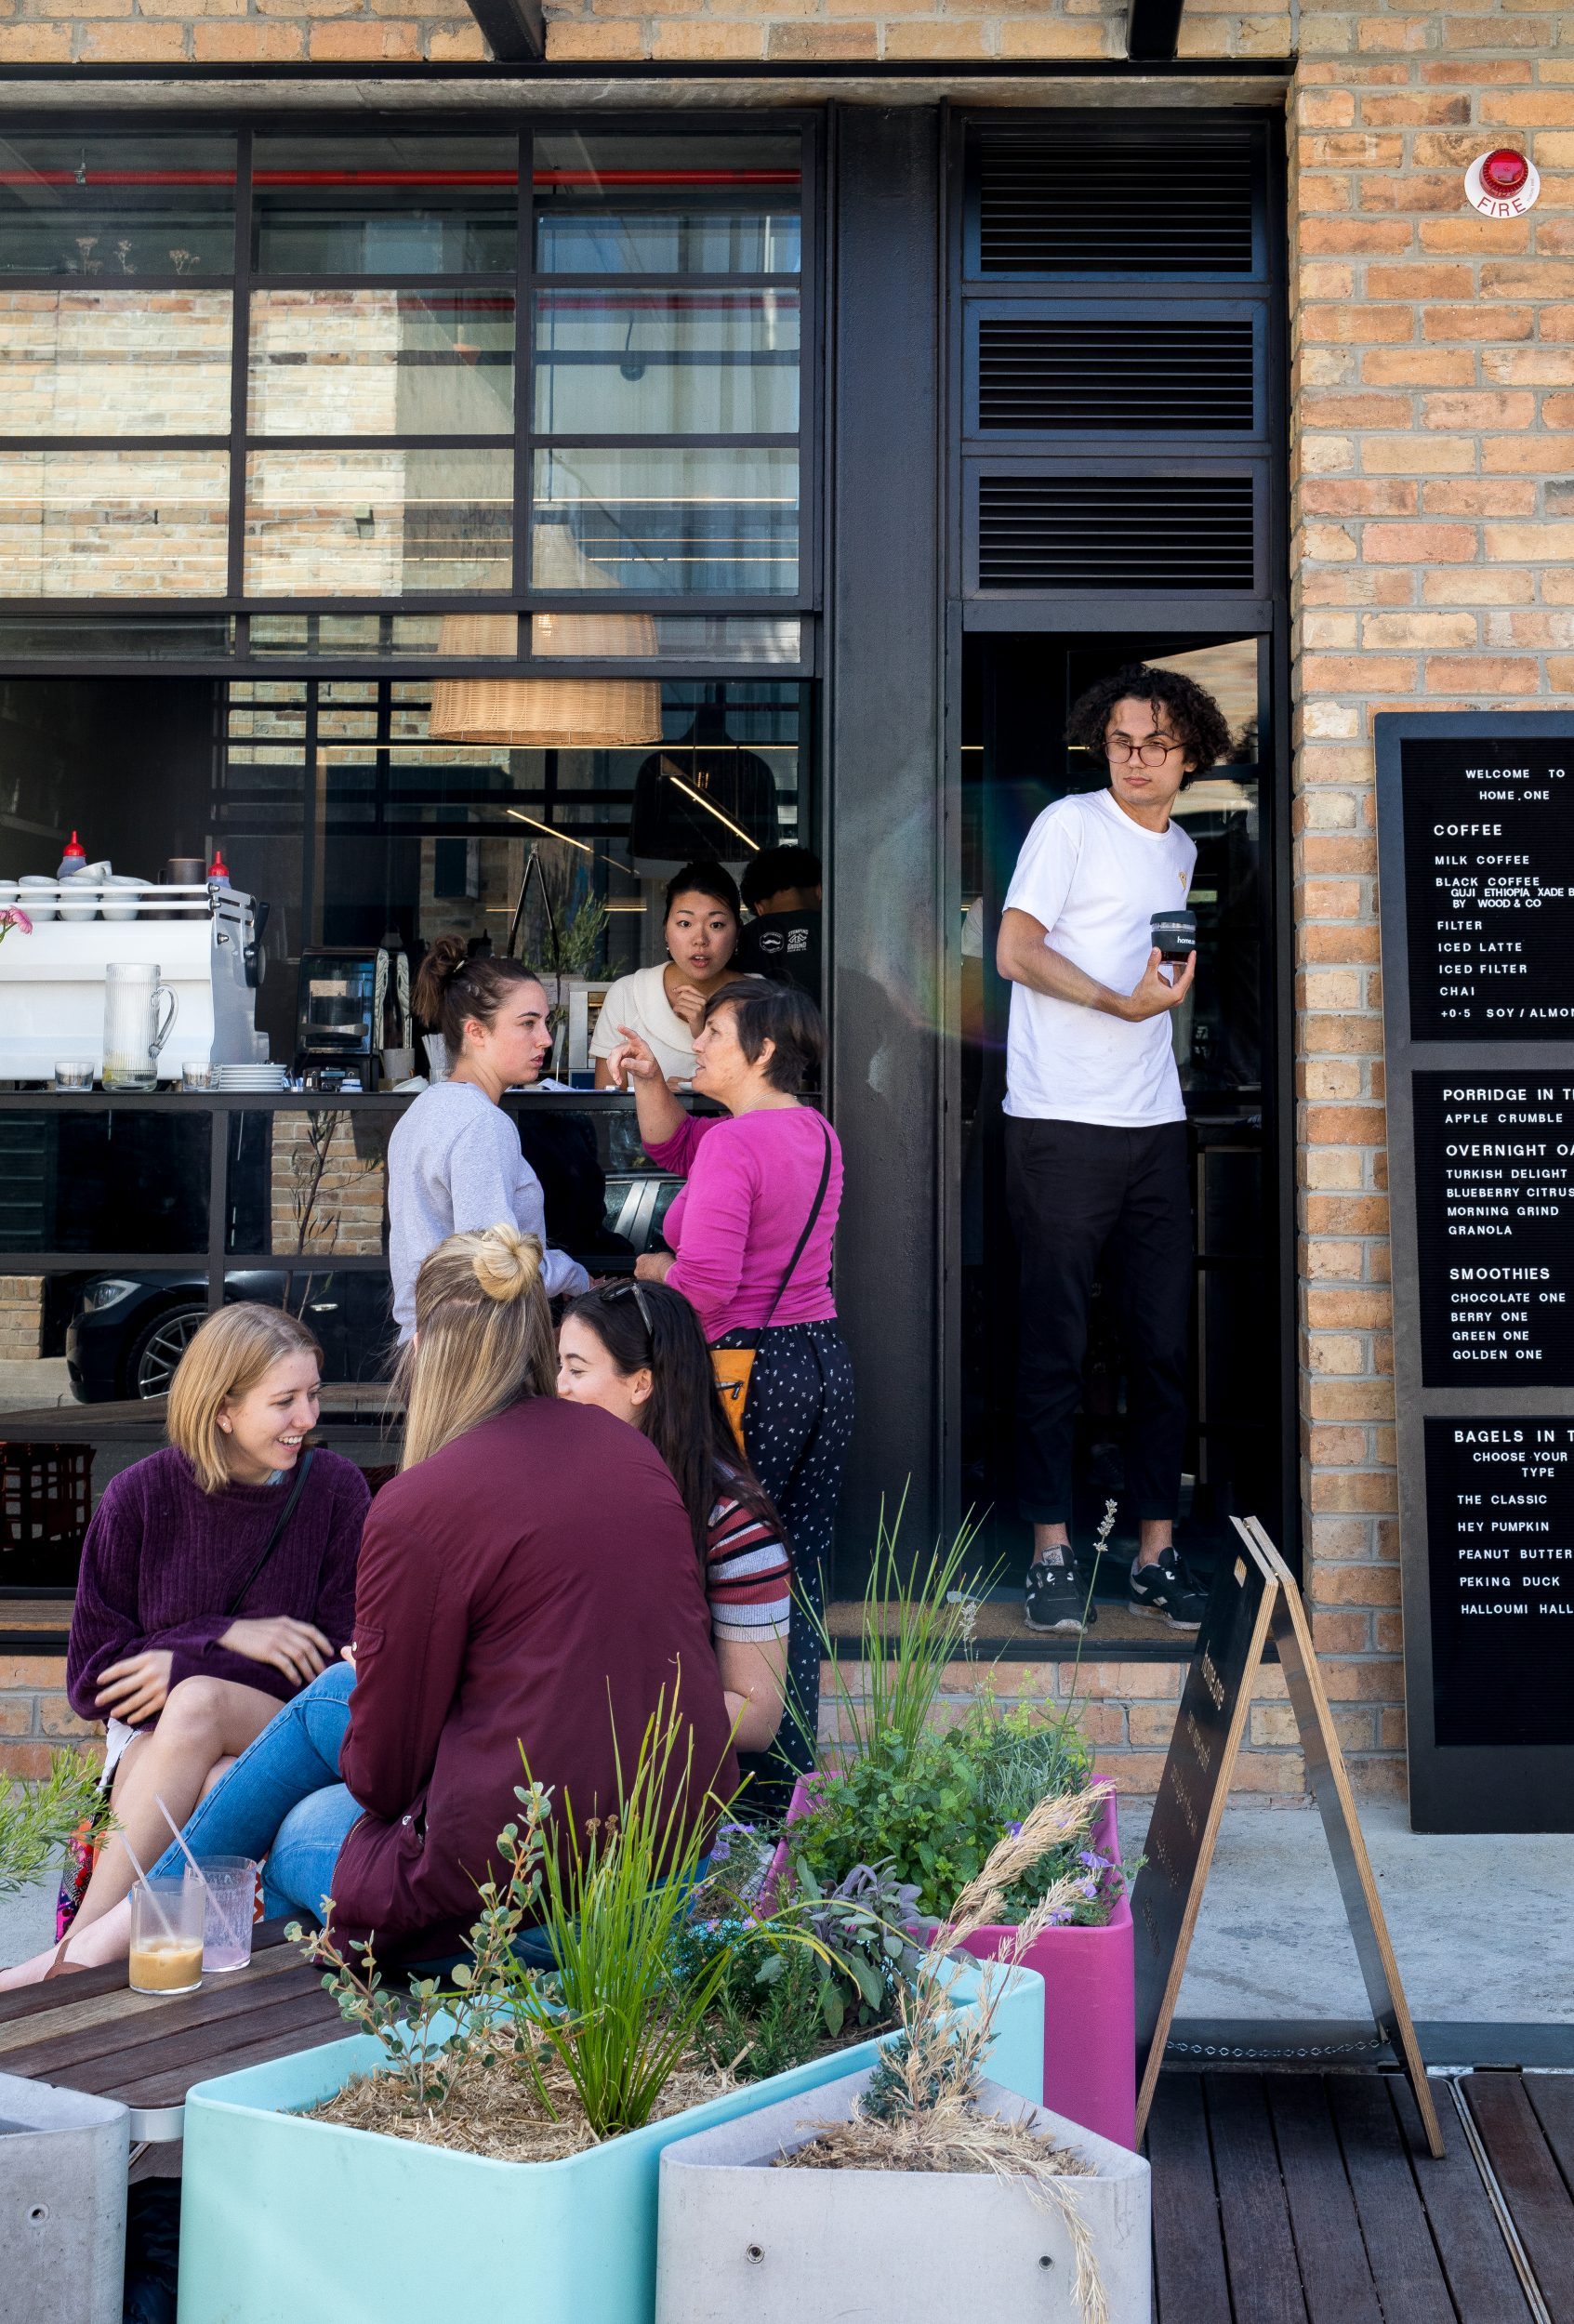 home.one, a cafe in Brunswick trains disadvantaged youth to help them with future employment